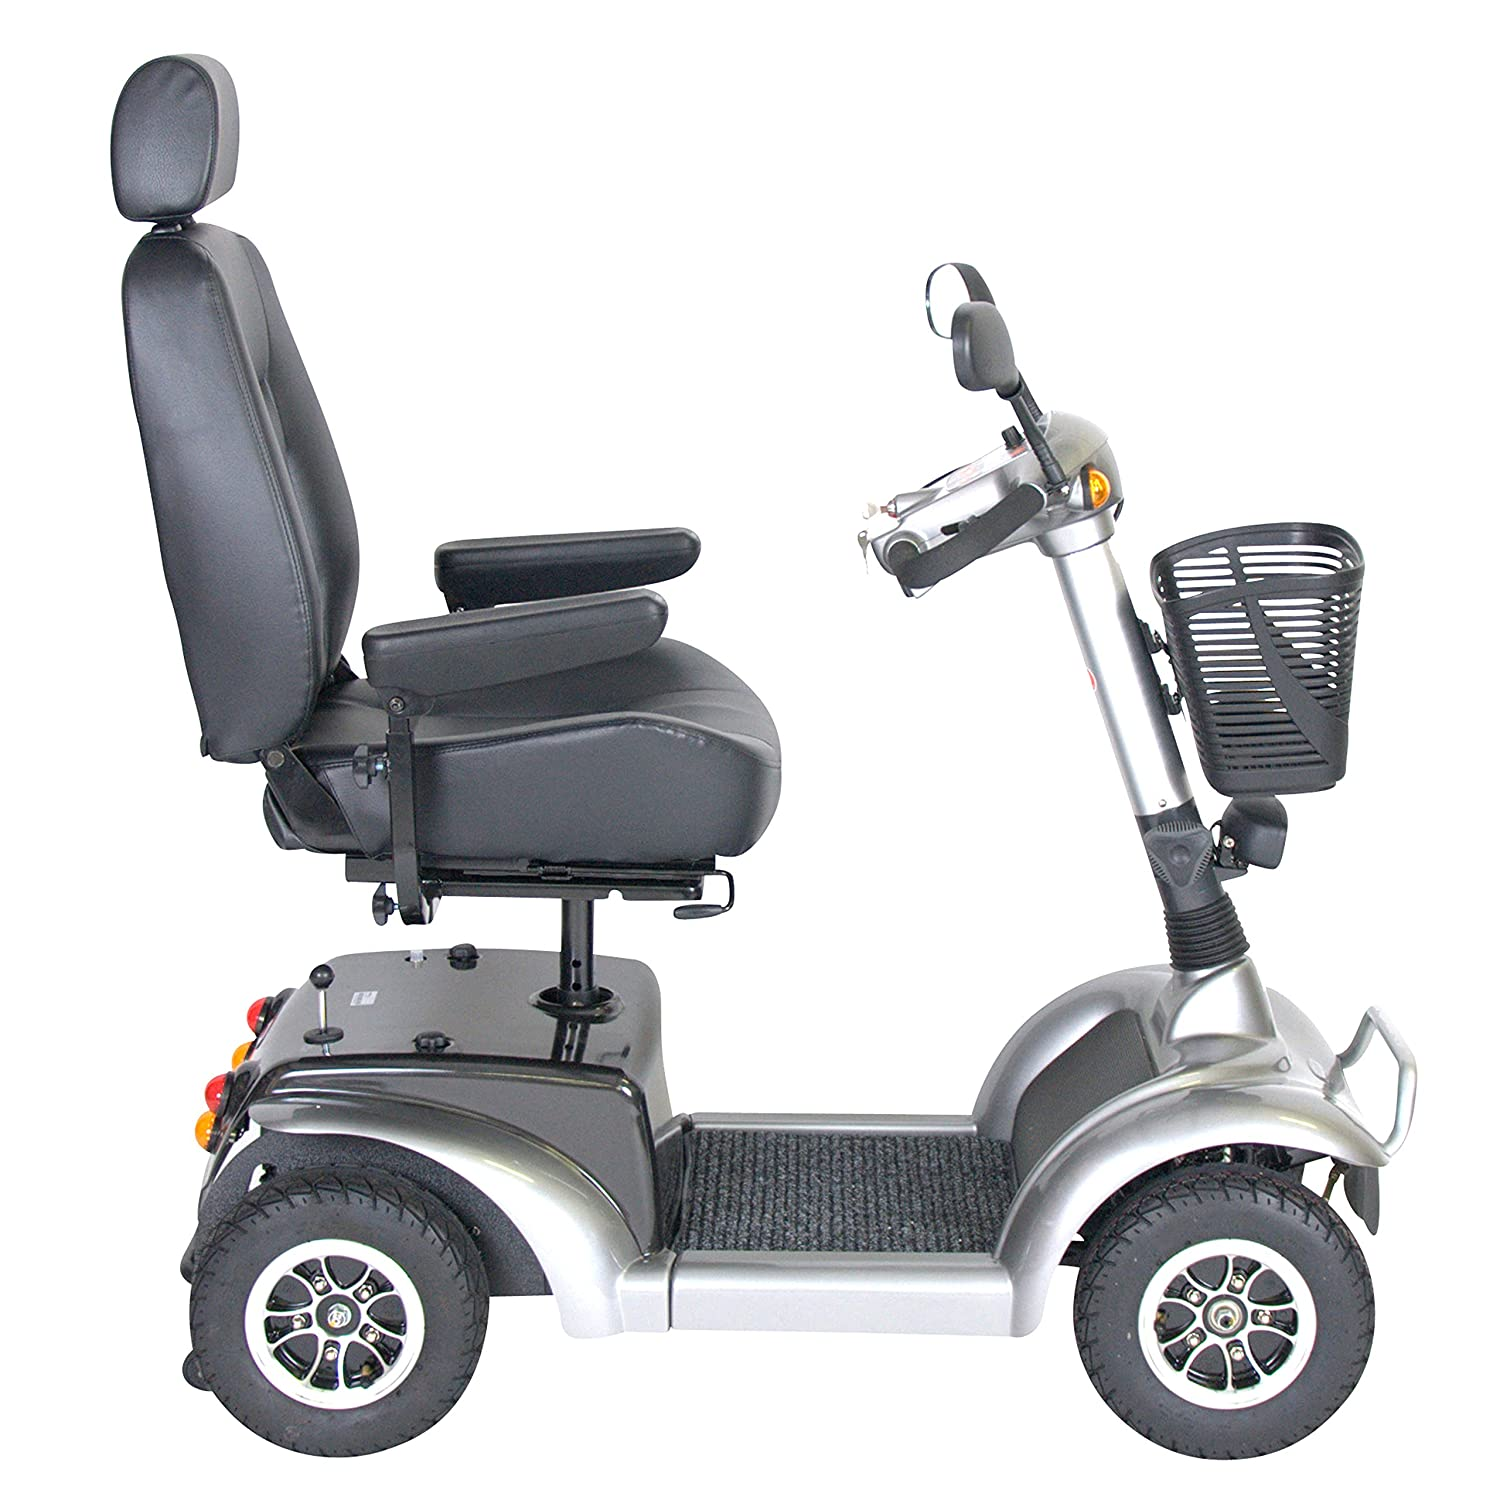 Amazon.com: Drive Medical Prowler Scooter de Movilidad, 4 ...